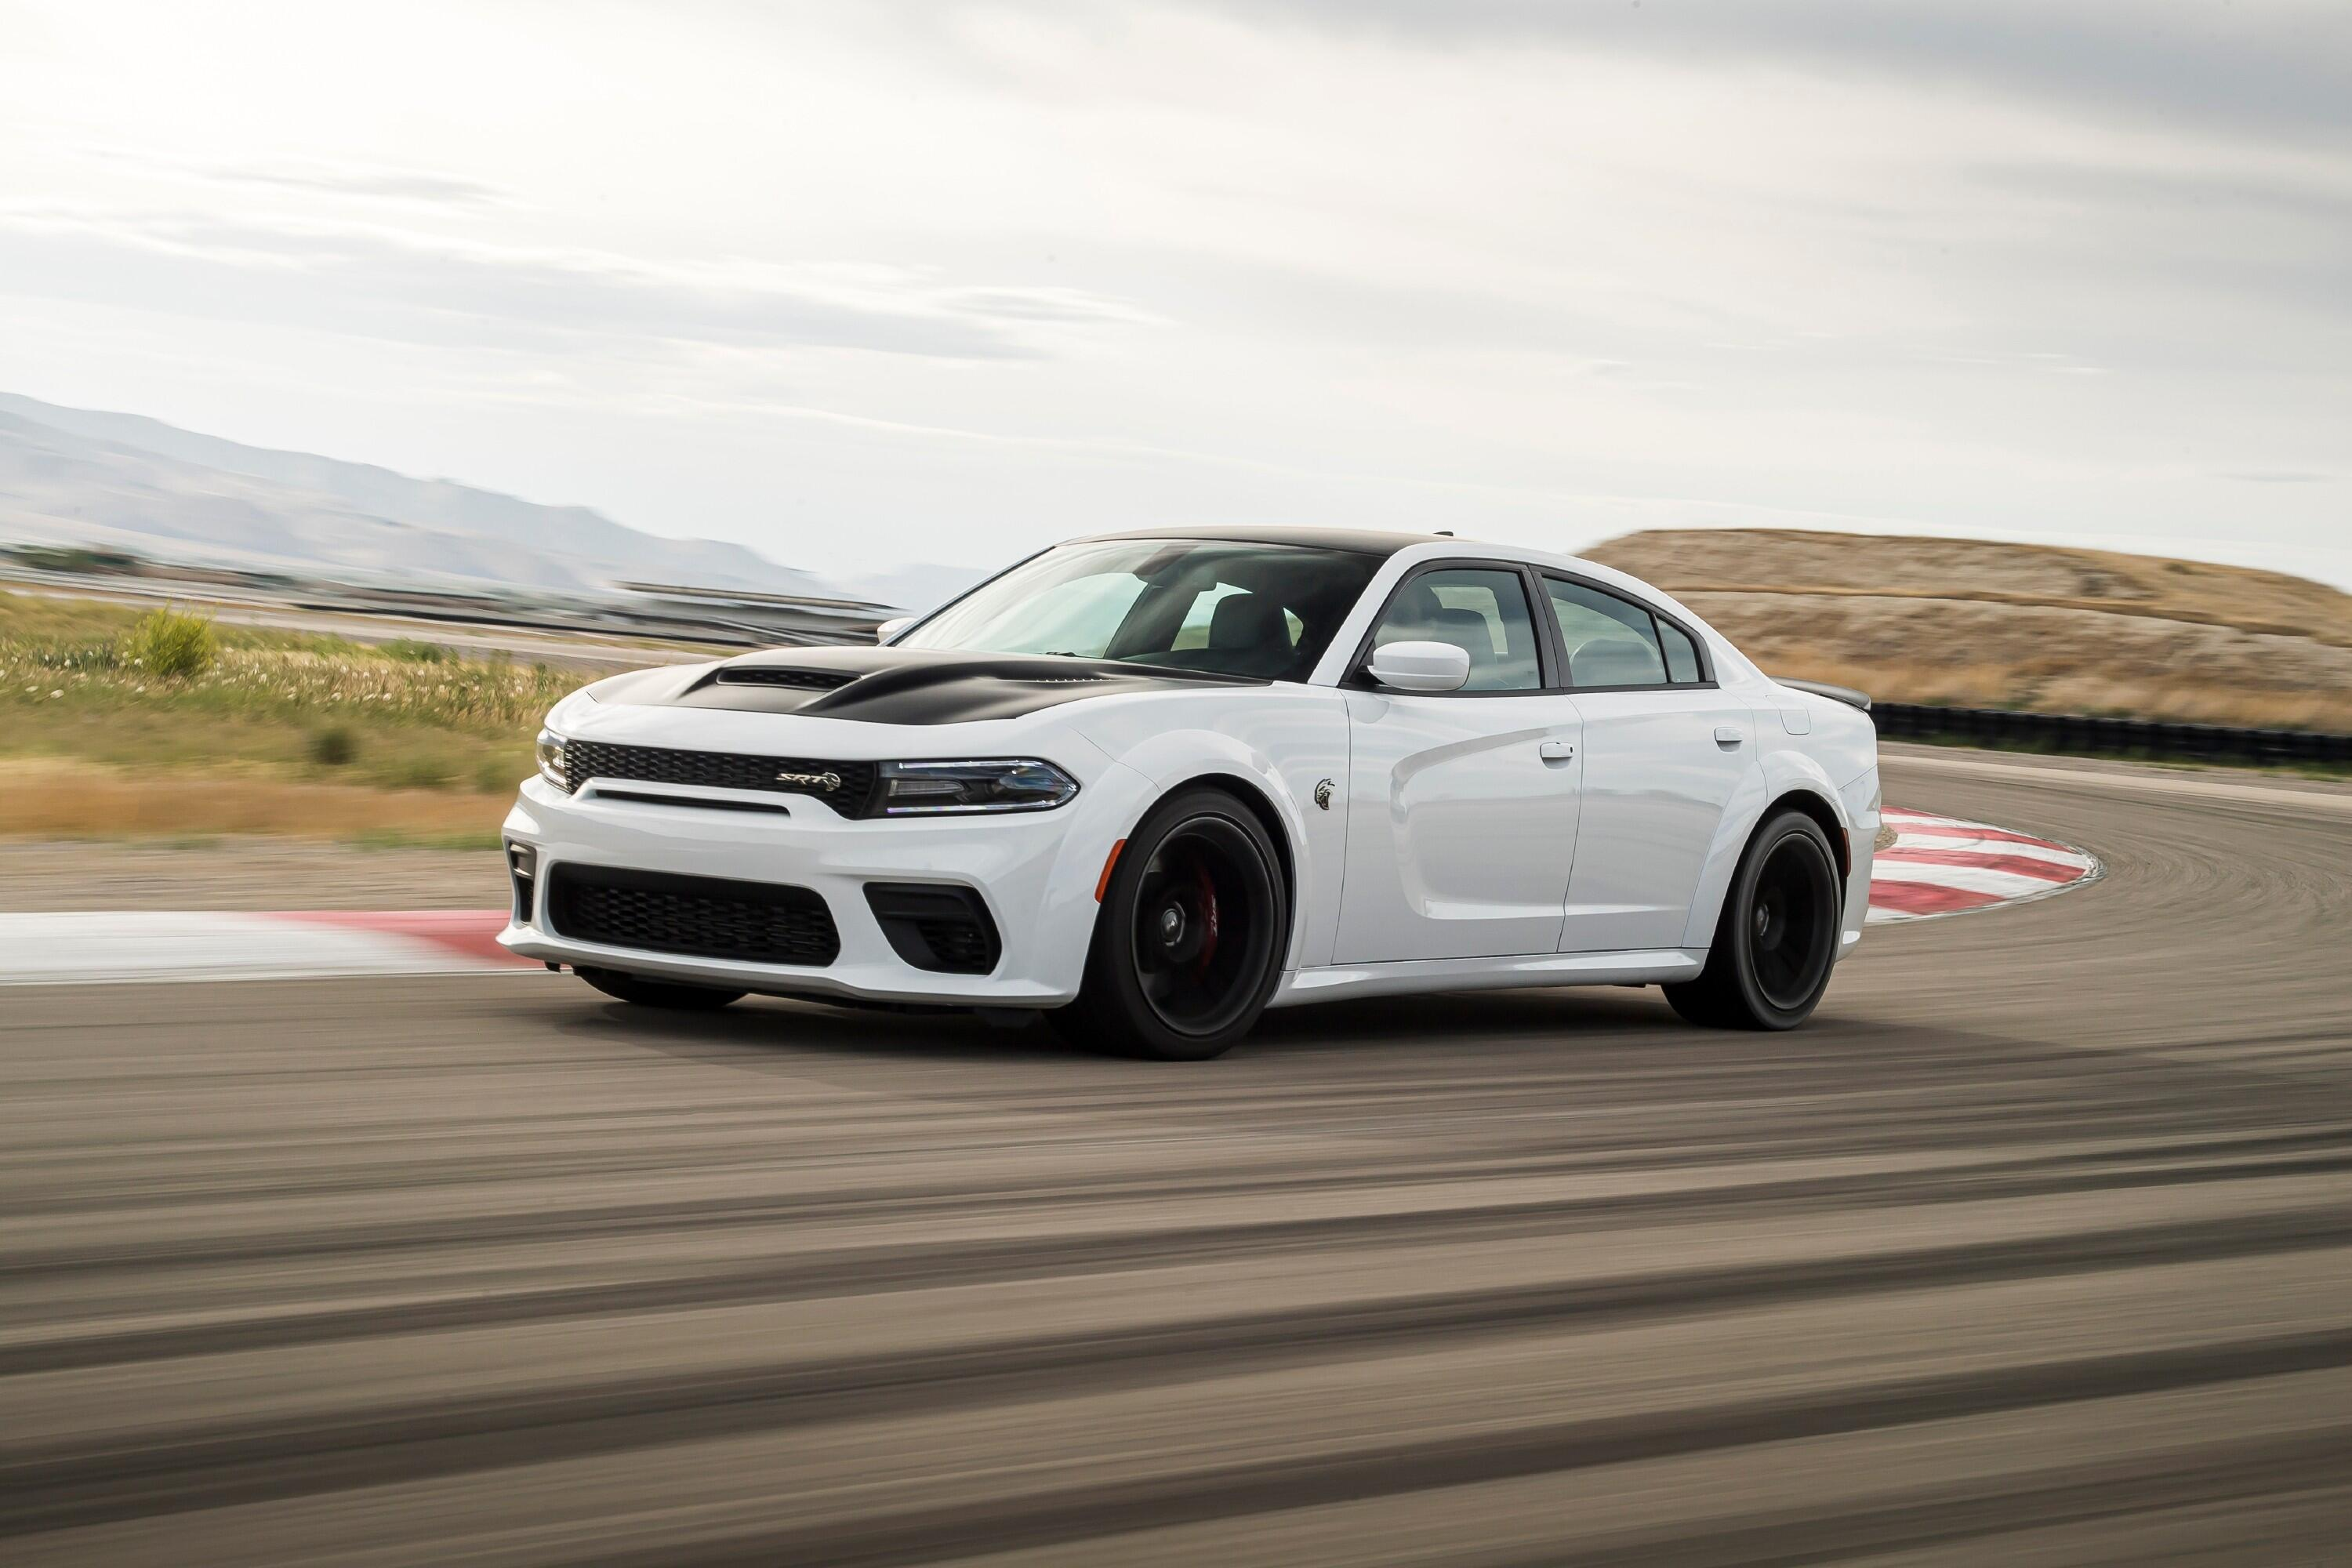 2021-dodge-charger-redeye-008